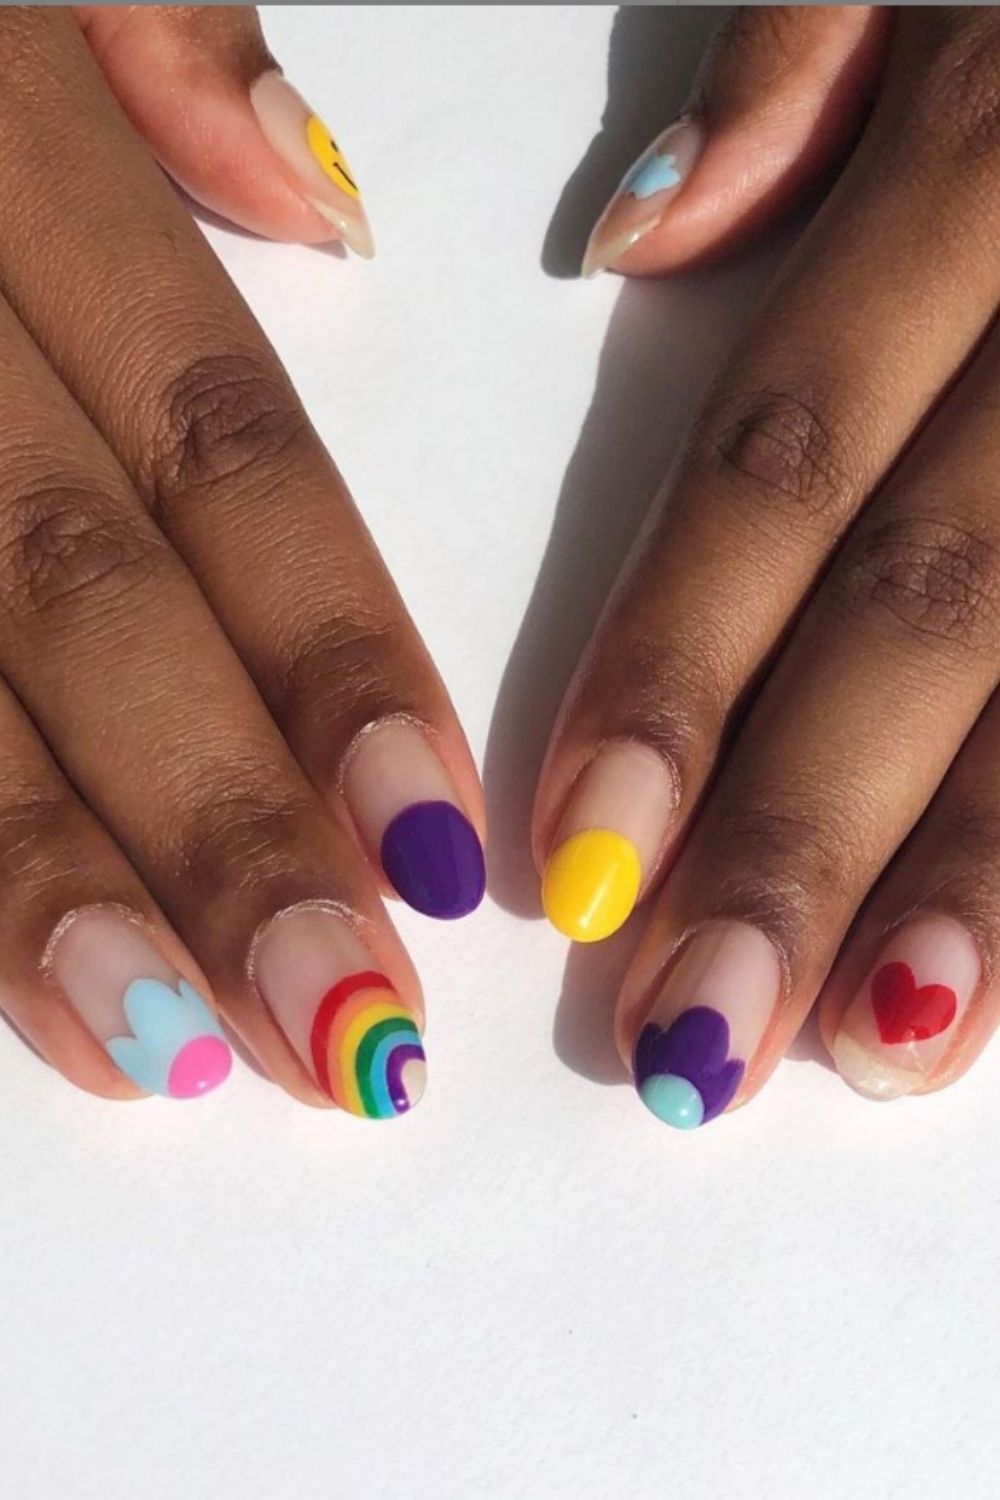 Summer Rainbow Nail Art You'll Love To Try 2021!